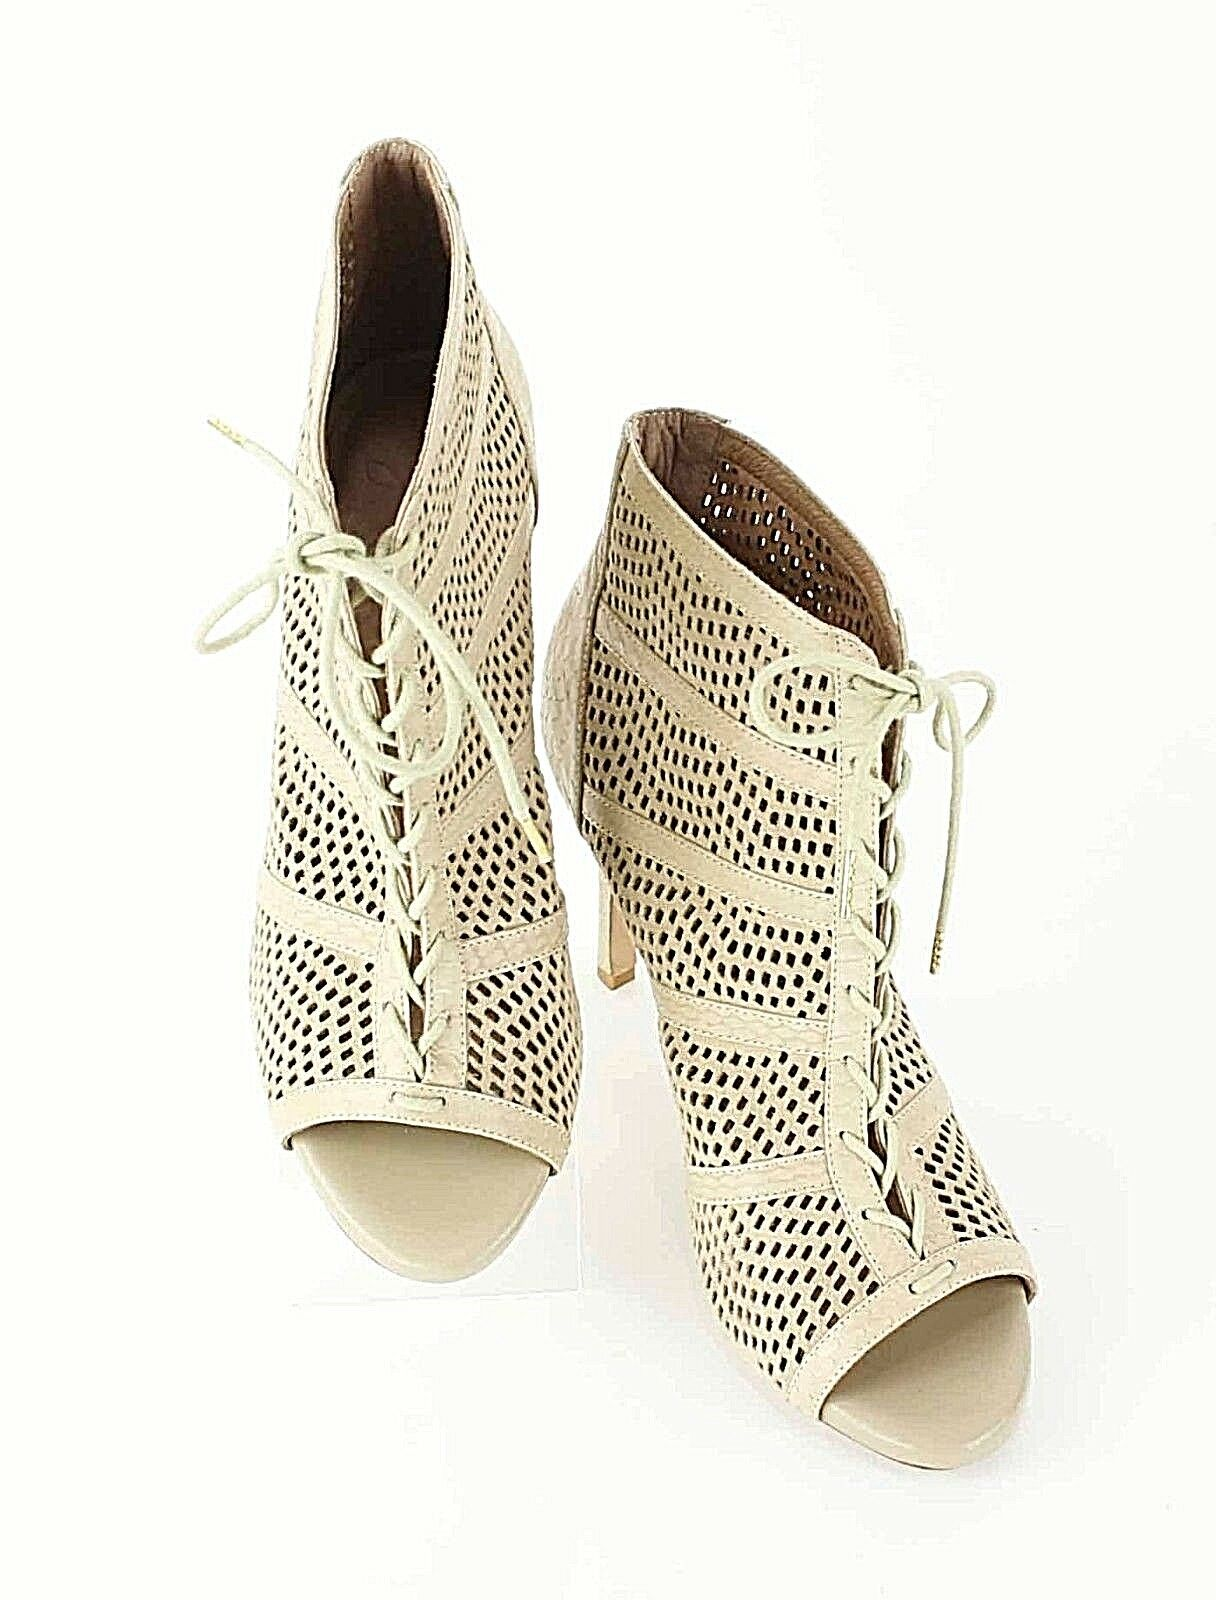 Joie Toe Sz 38 Tan Perforated Leder Laced Open Toe Joie High Heeled Ankle Boot E120 e5f788